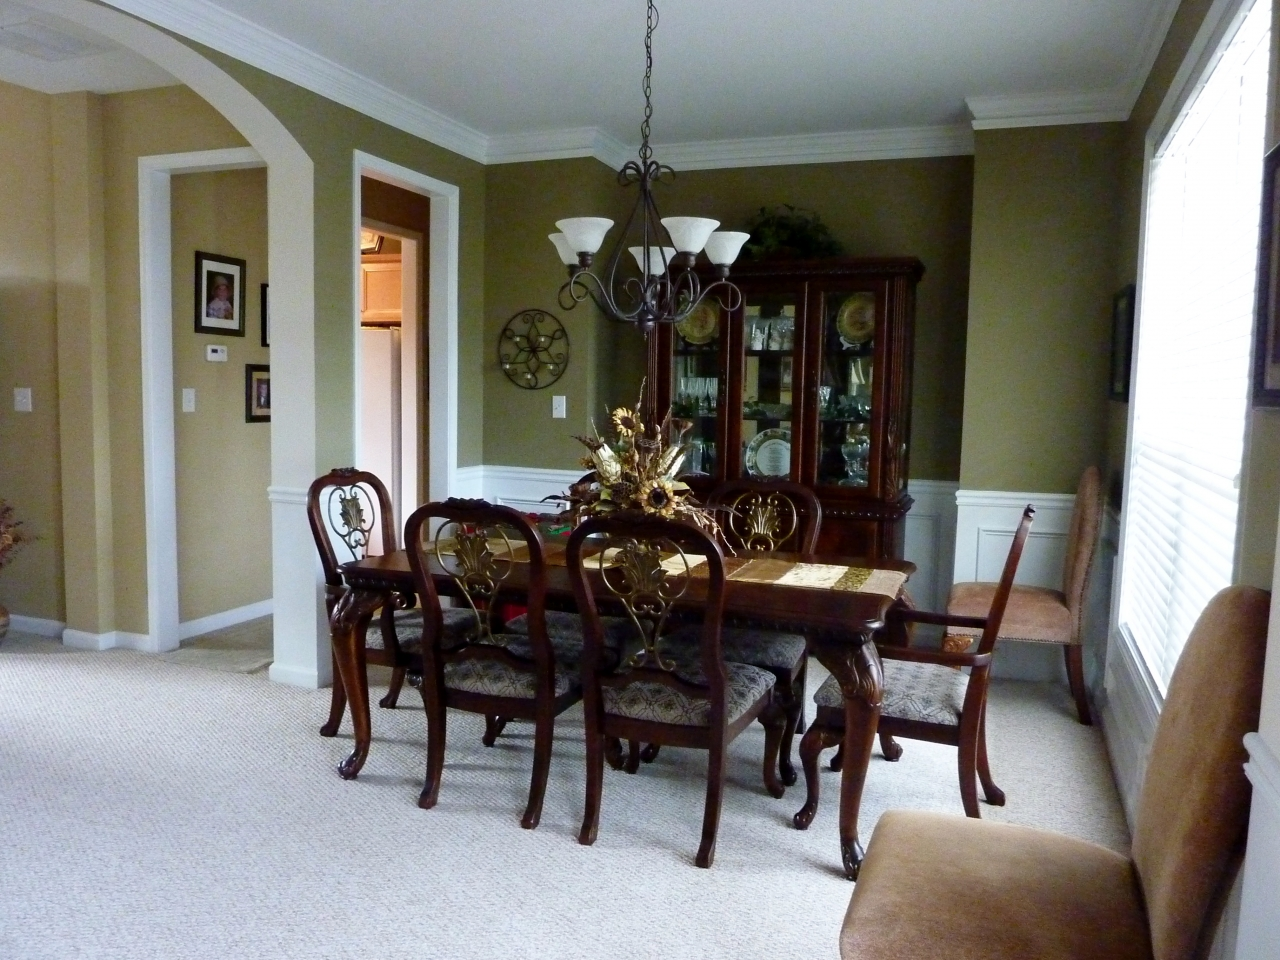 Formal Dining Room off Foyer